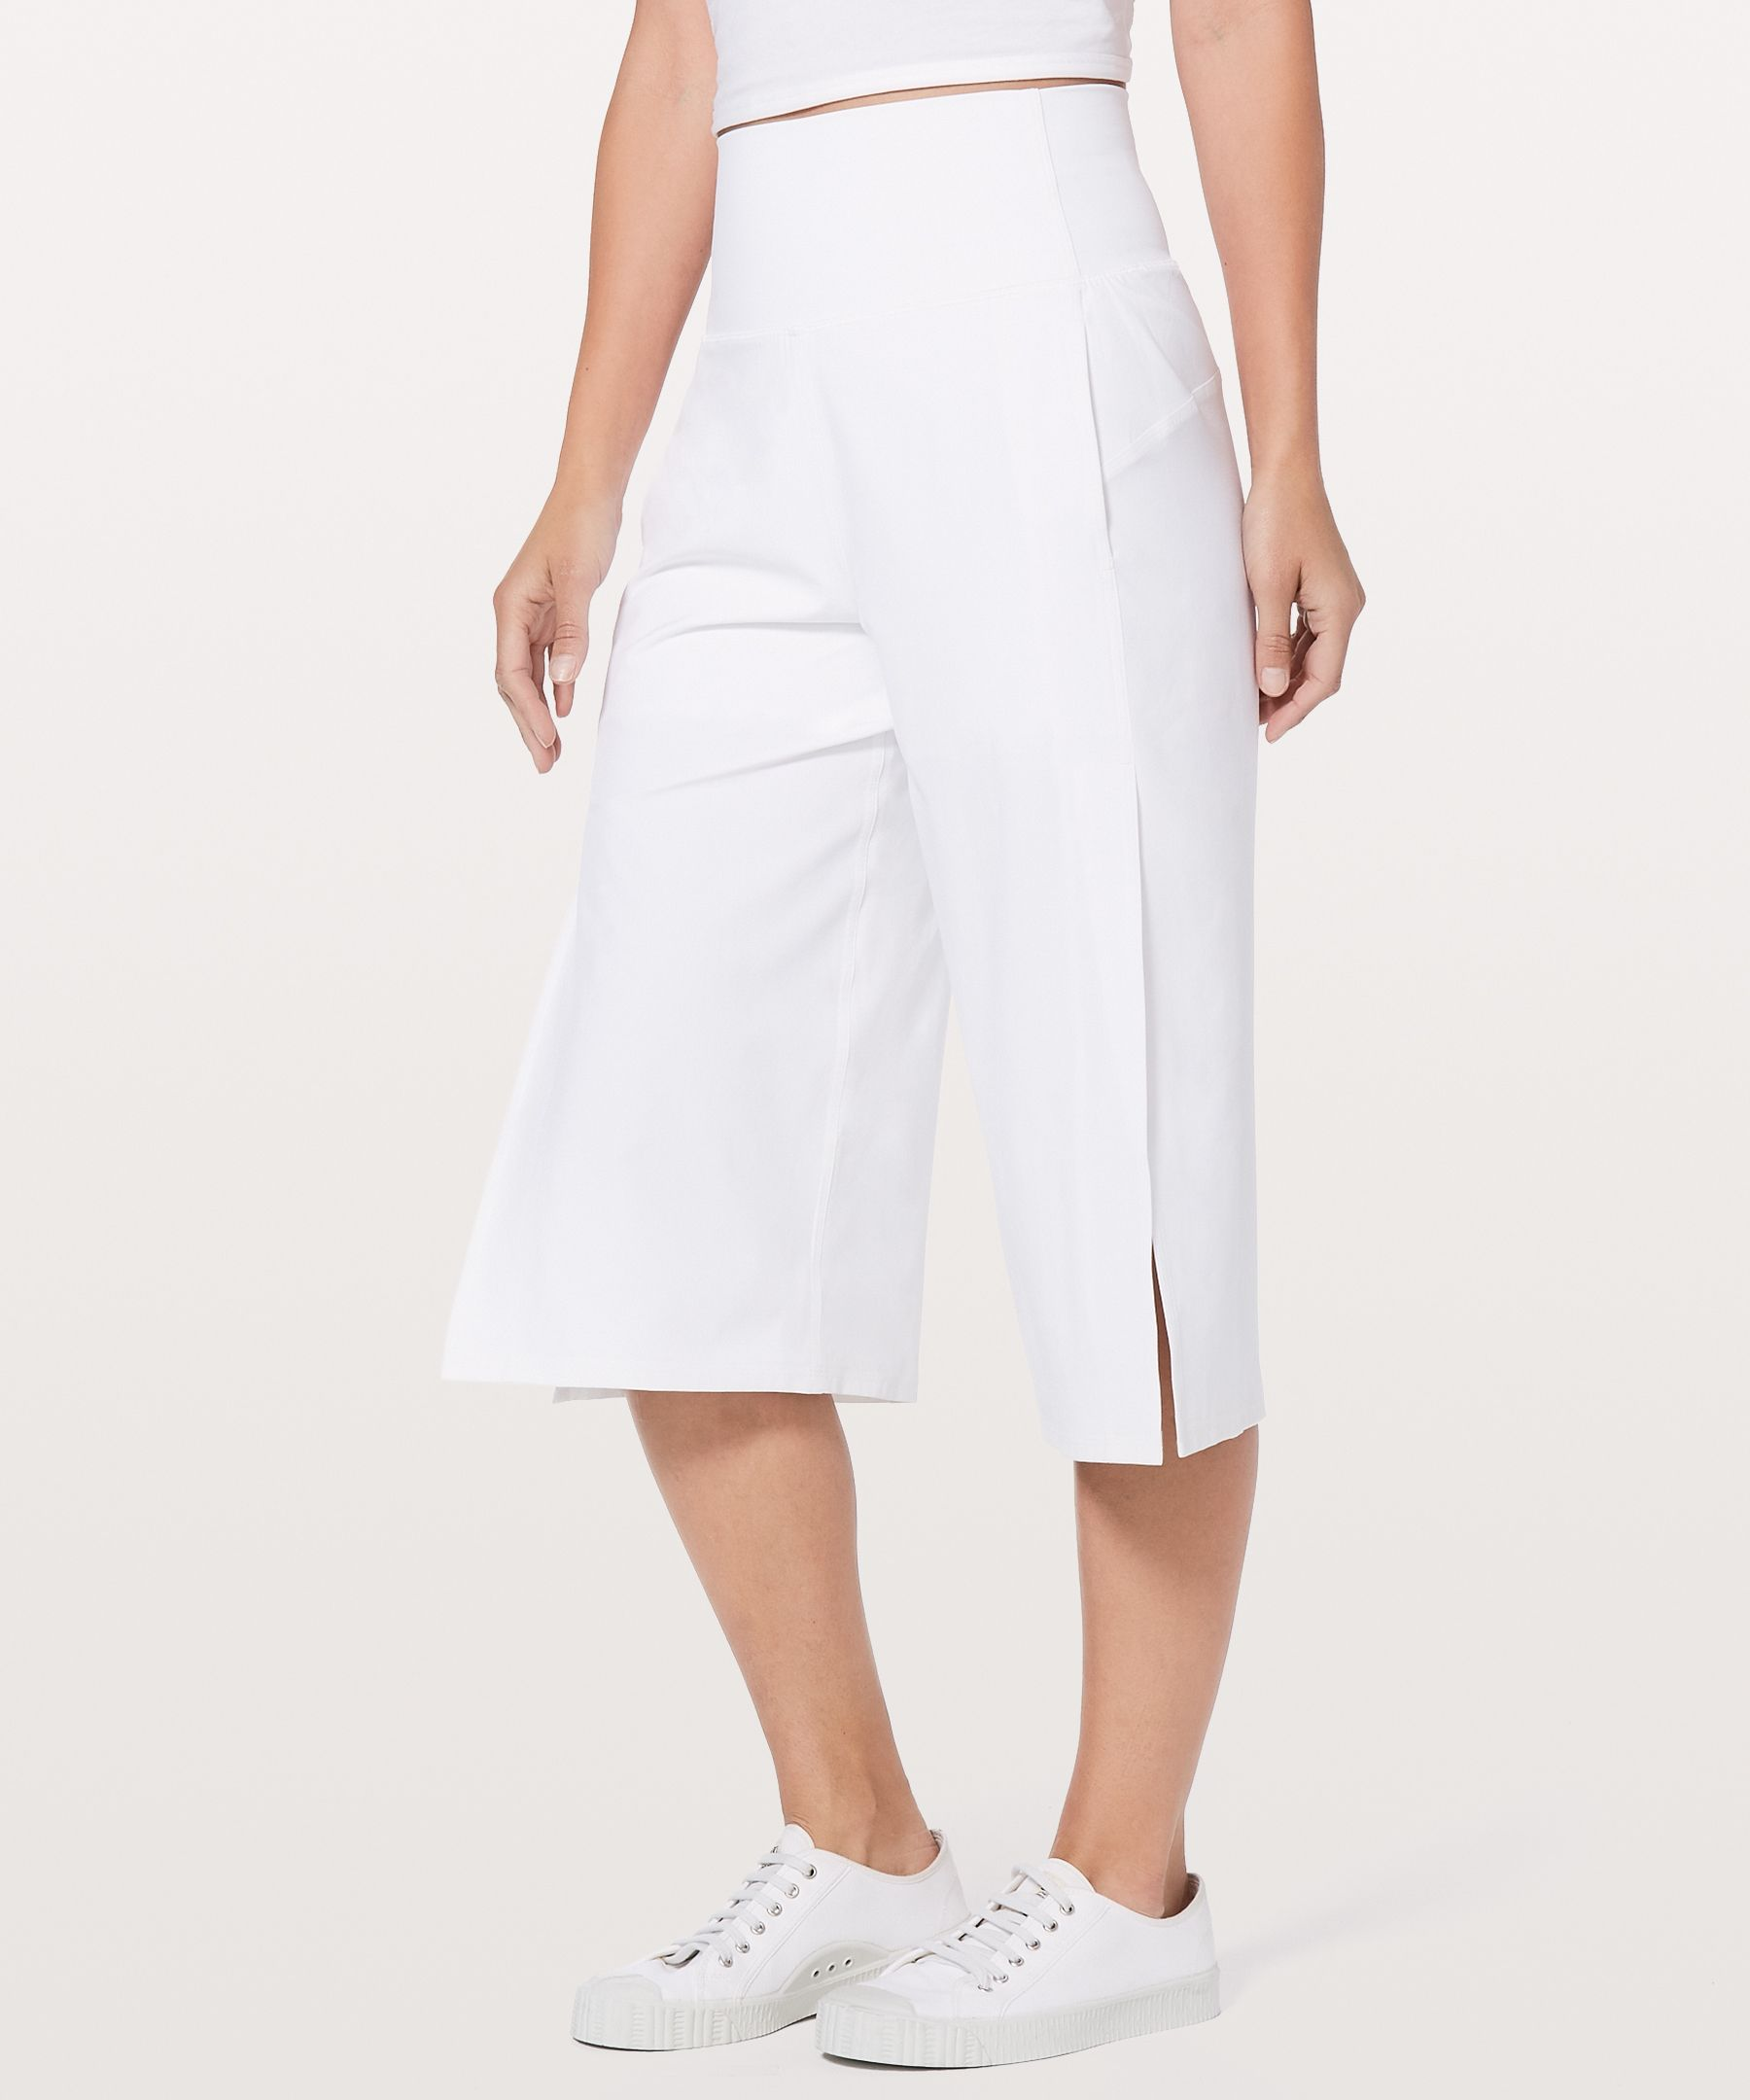 "Serene Crop Lined 19"" by Lululemon"